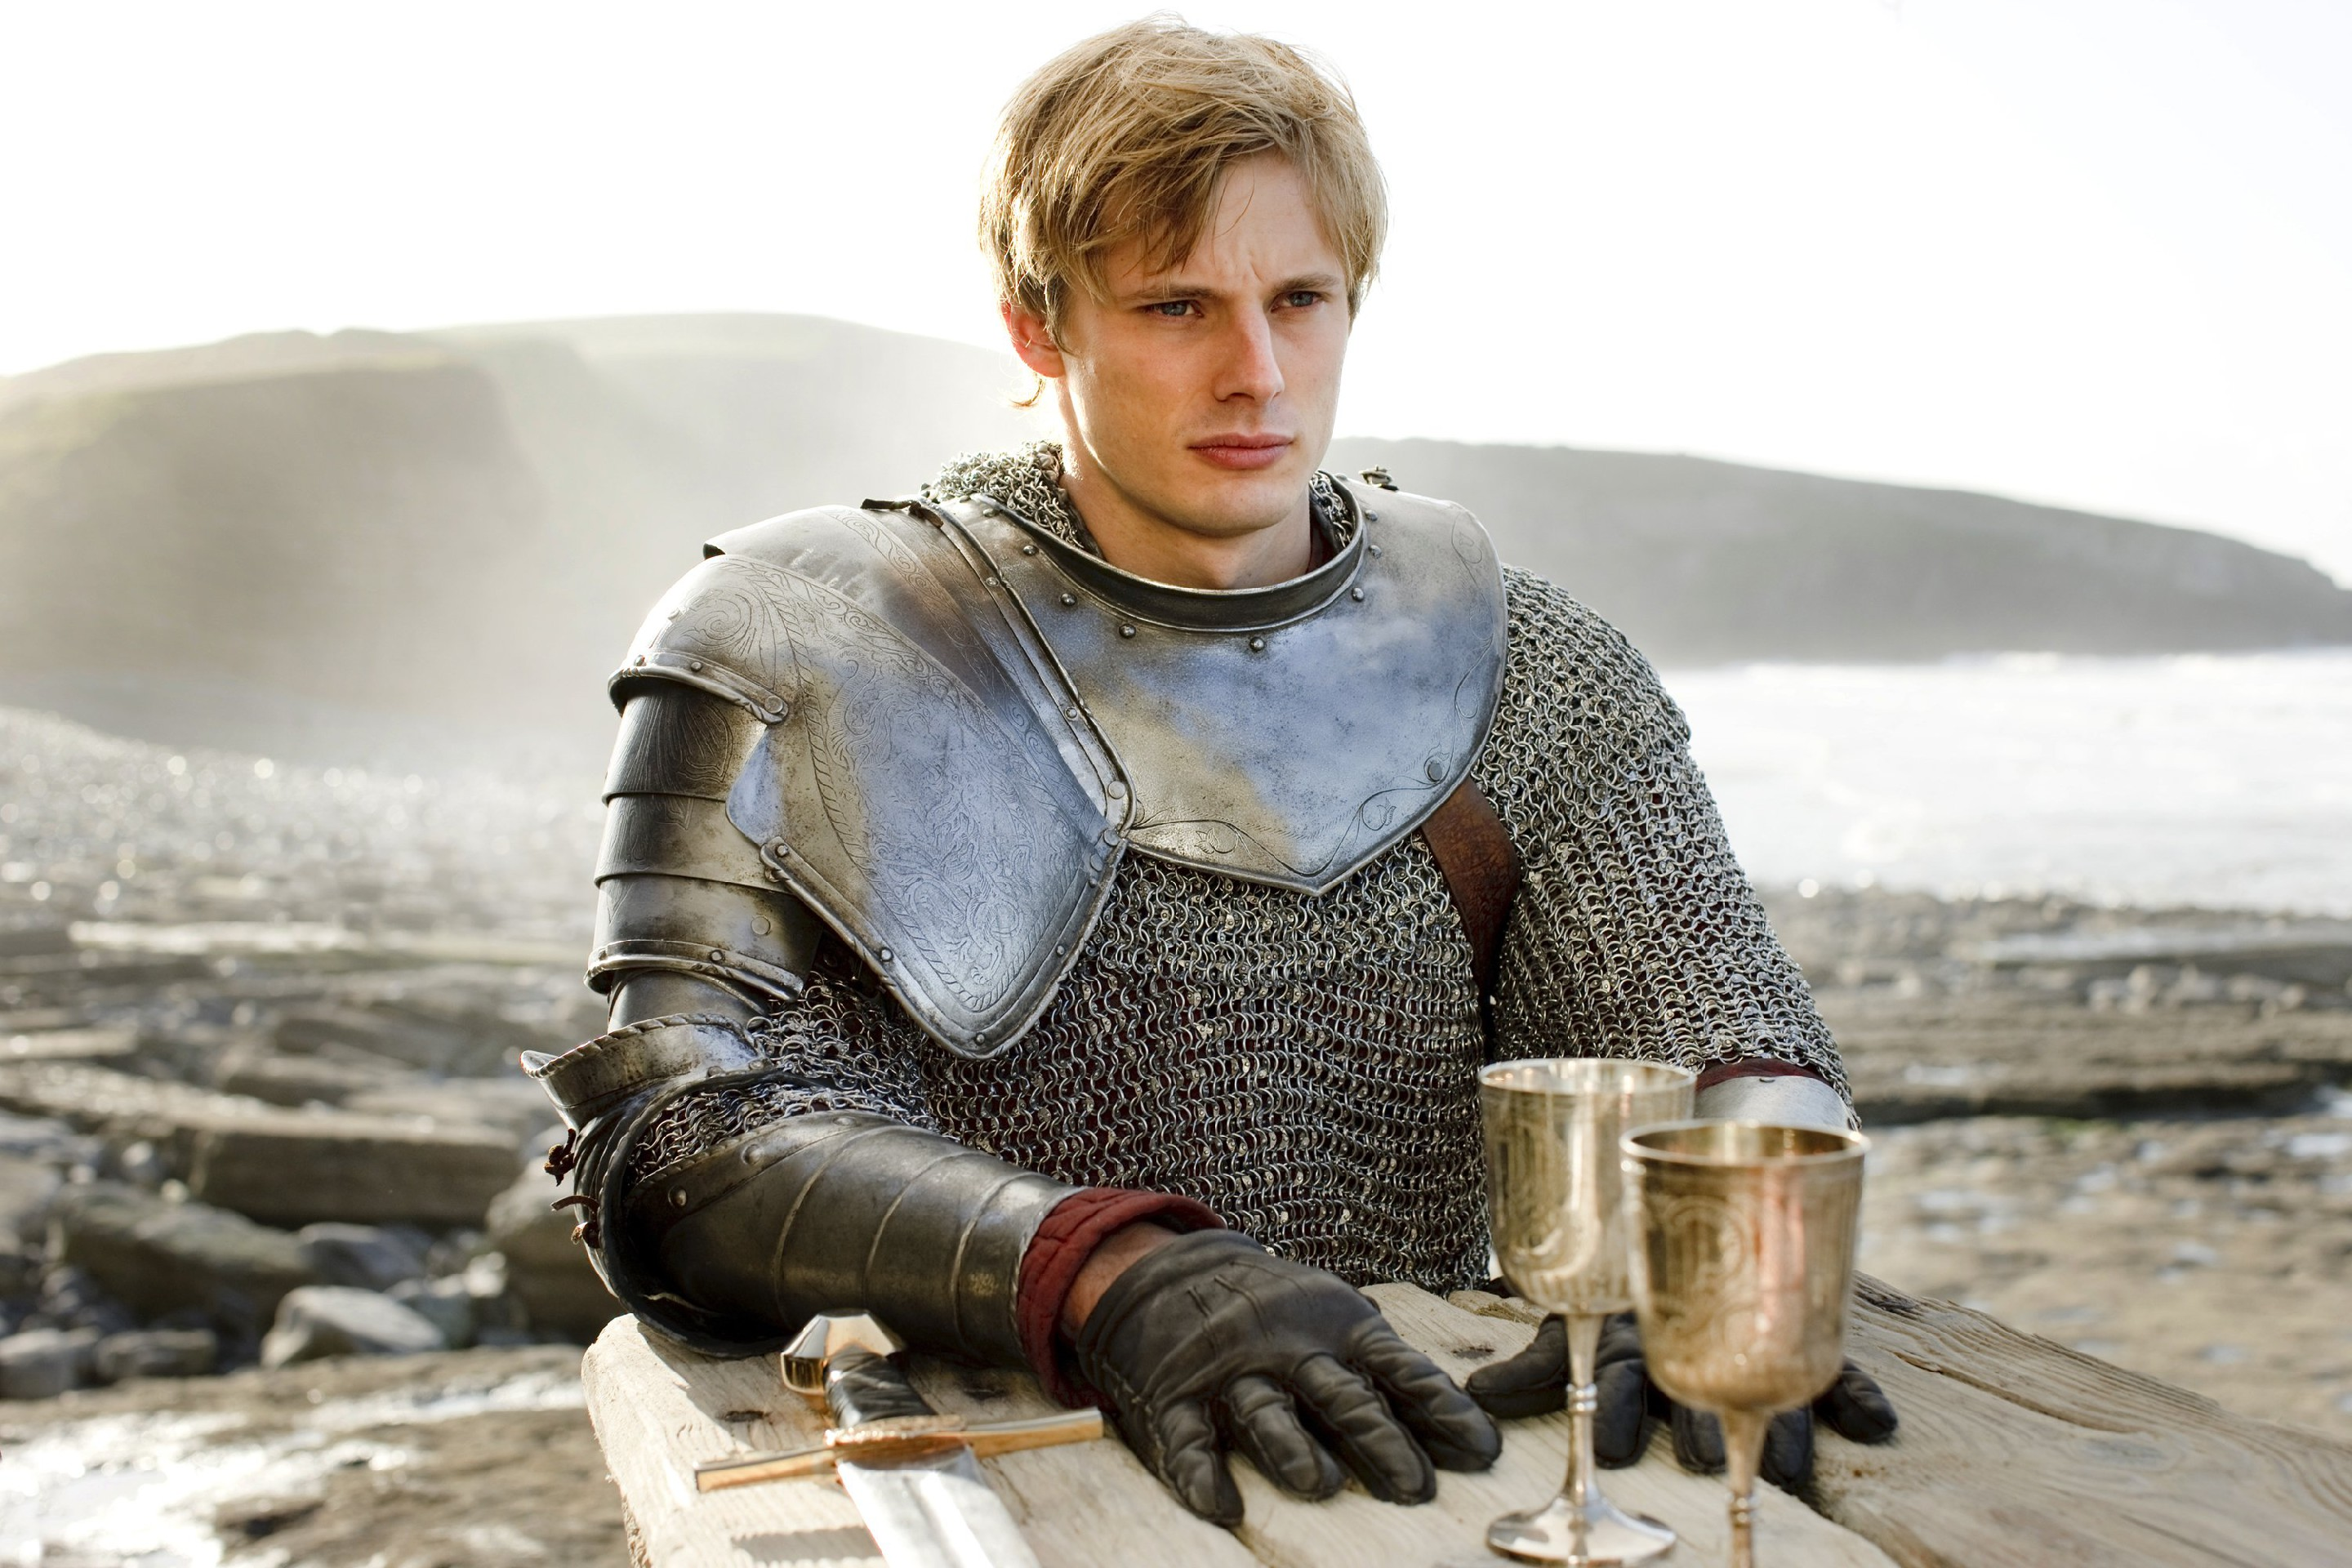 Prince Arthur prepares to drink poison to save Merlin